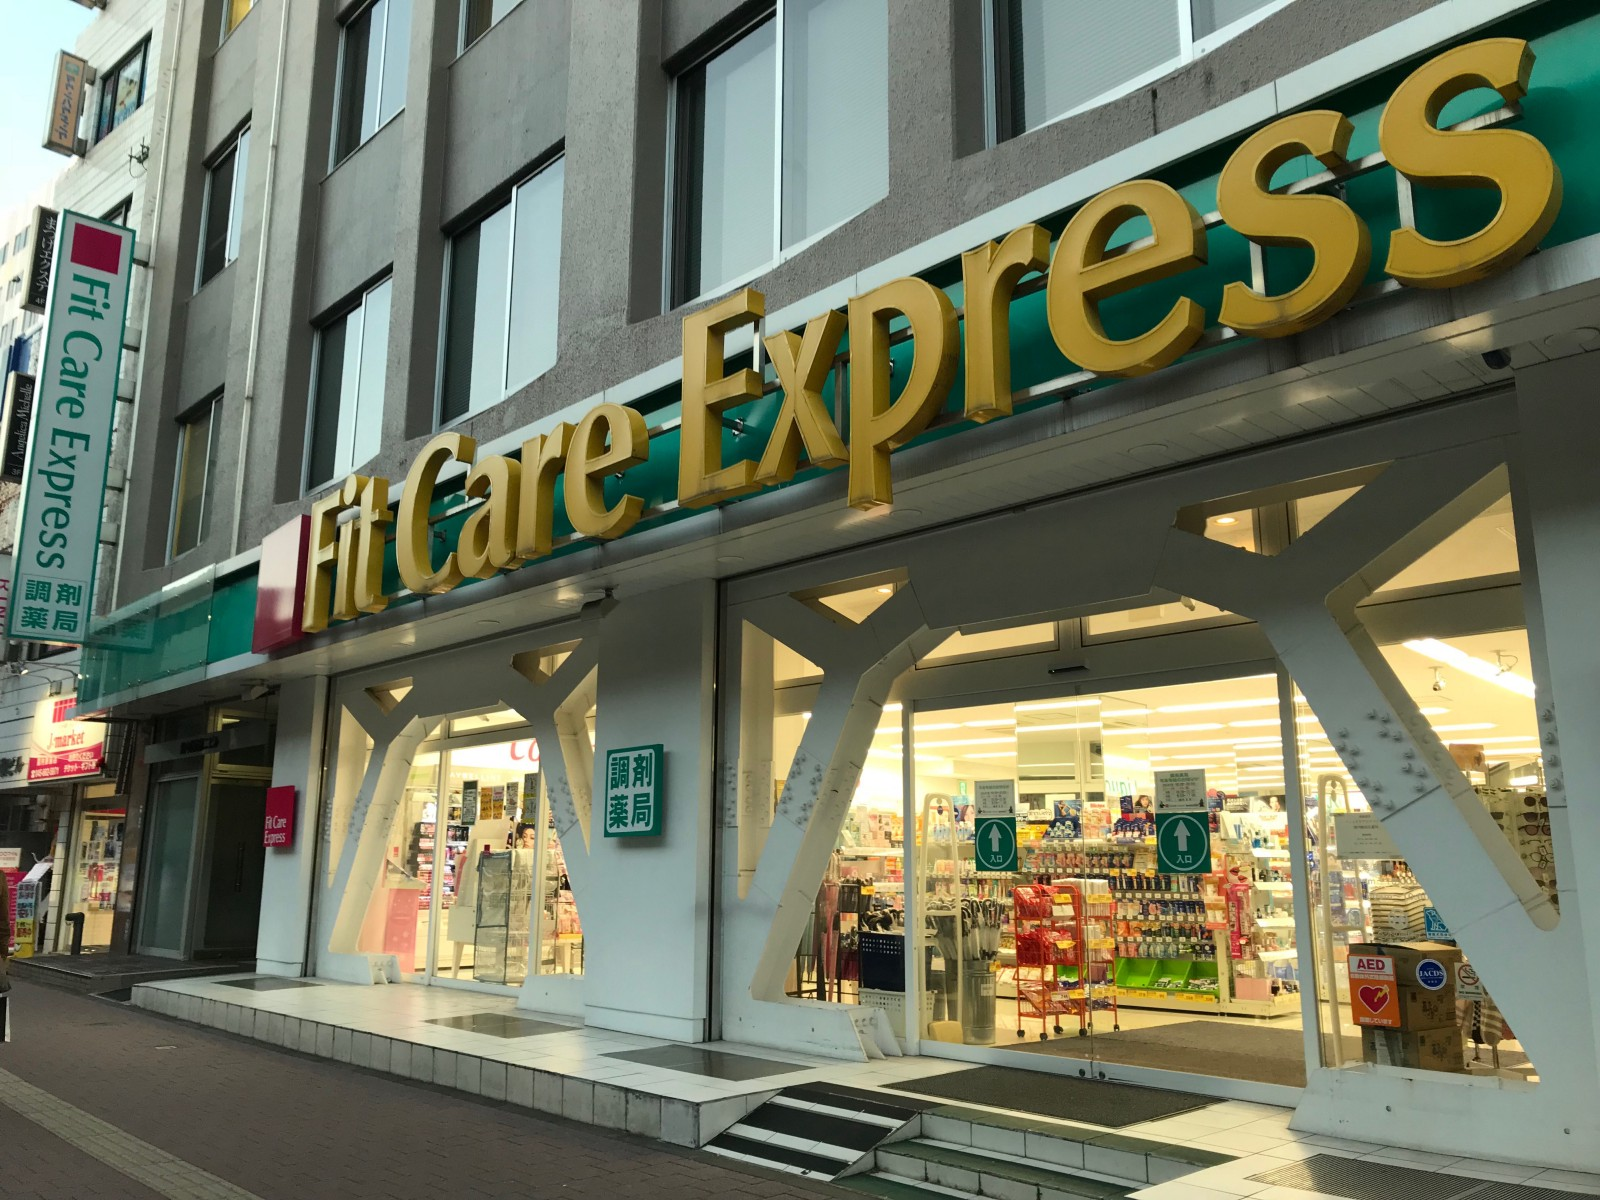 The shops front of Fit Care Express